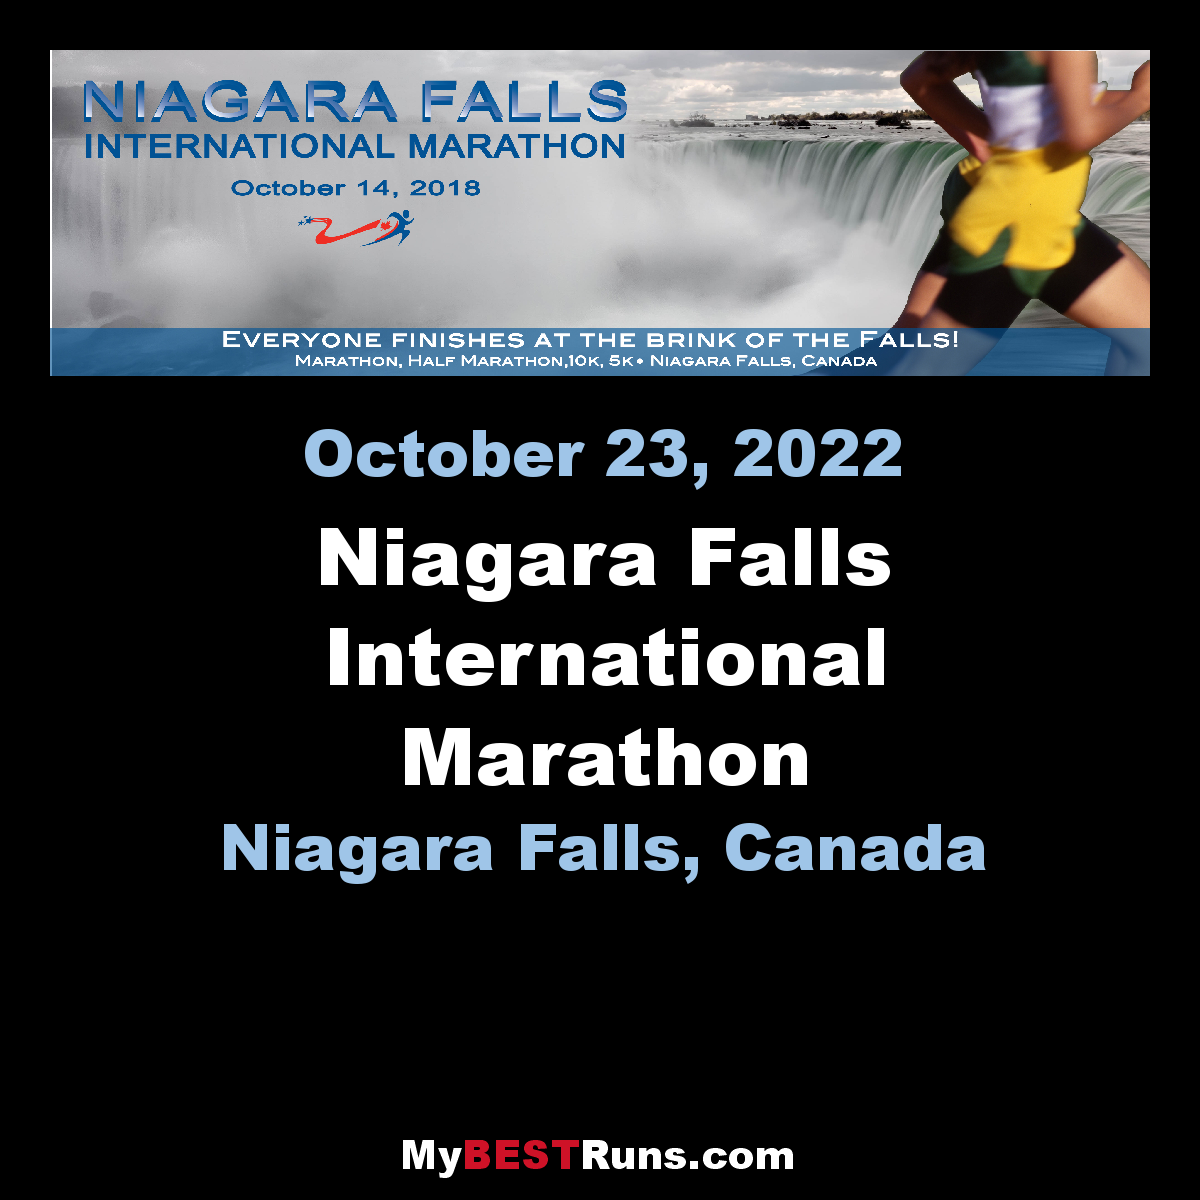 Niagara Falls International Marathon